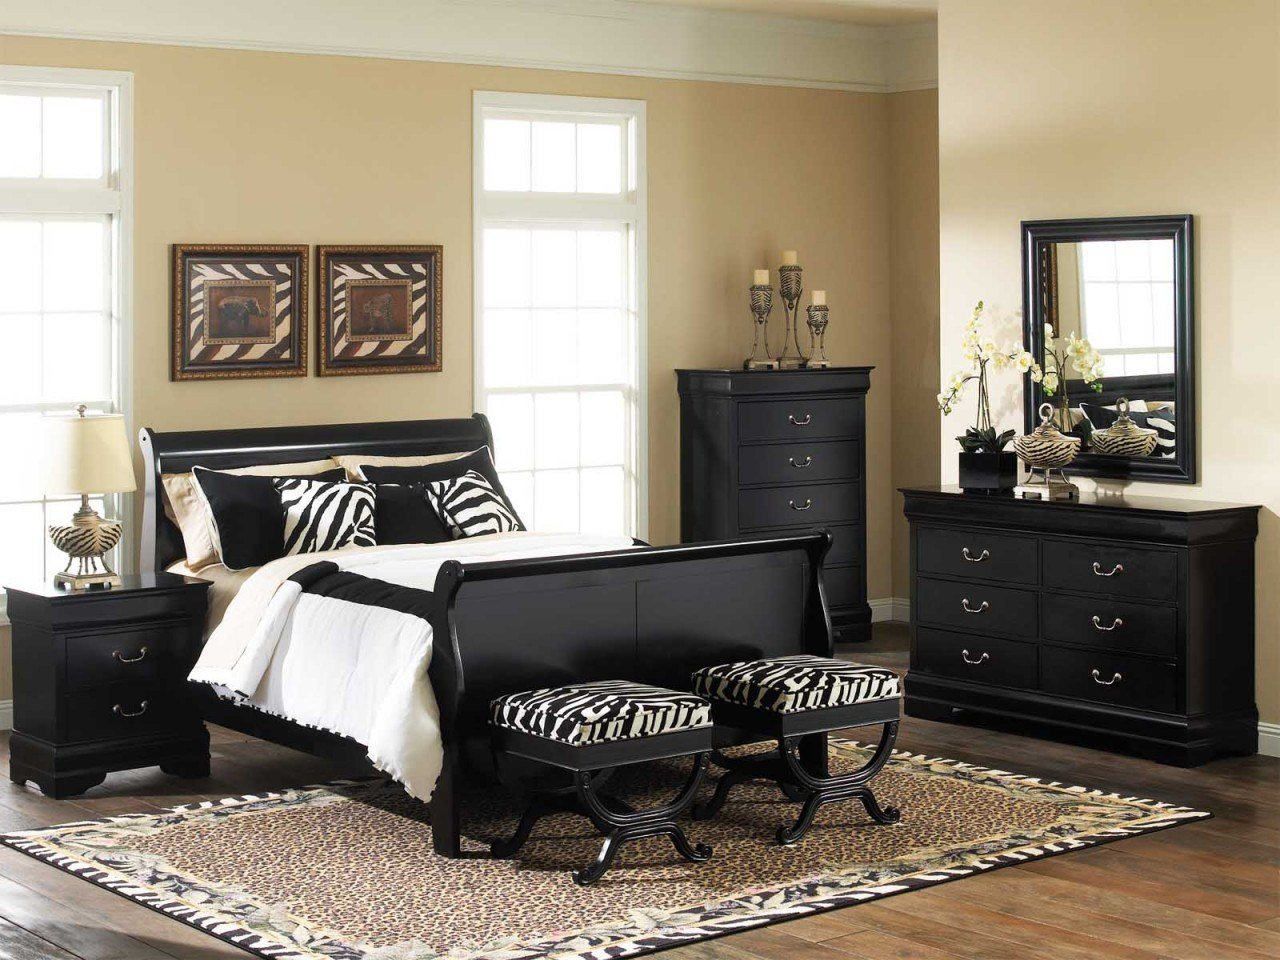 Best Making An Amazing Bed Room With Black Bedroom Furniture Sets Homedee Com With Pictures